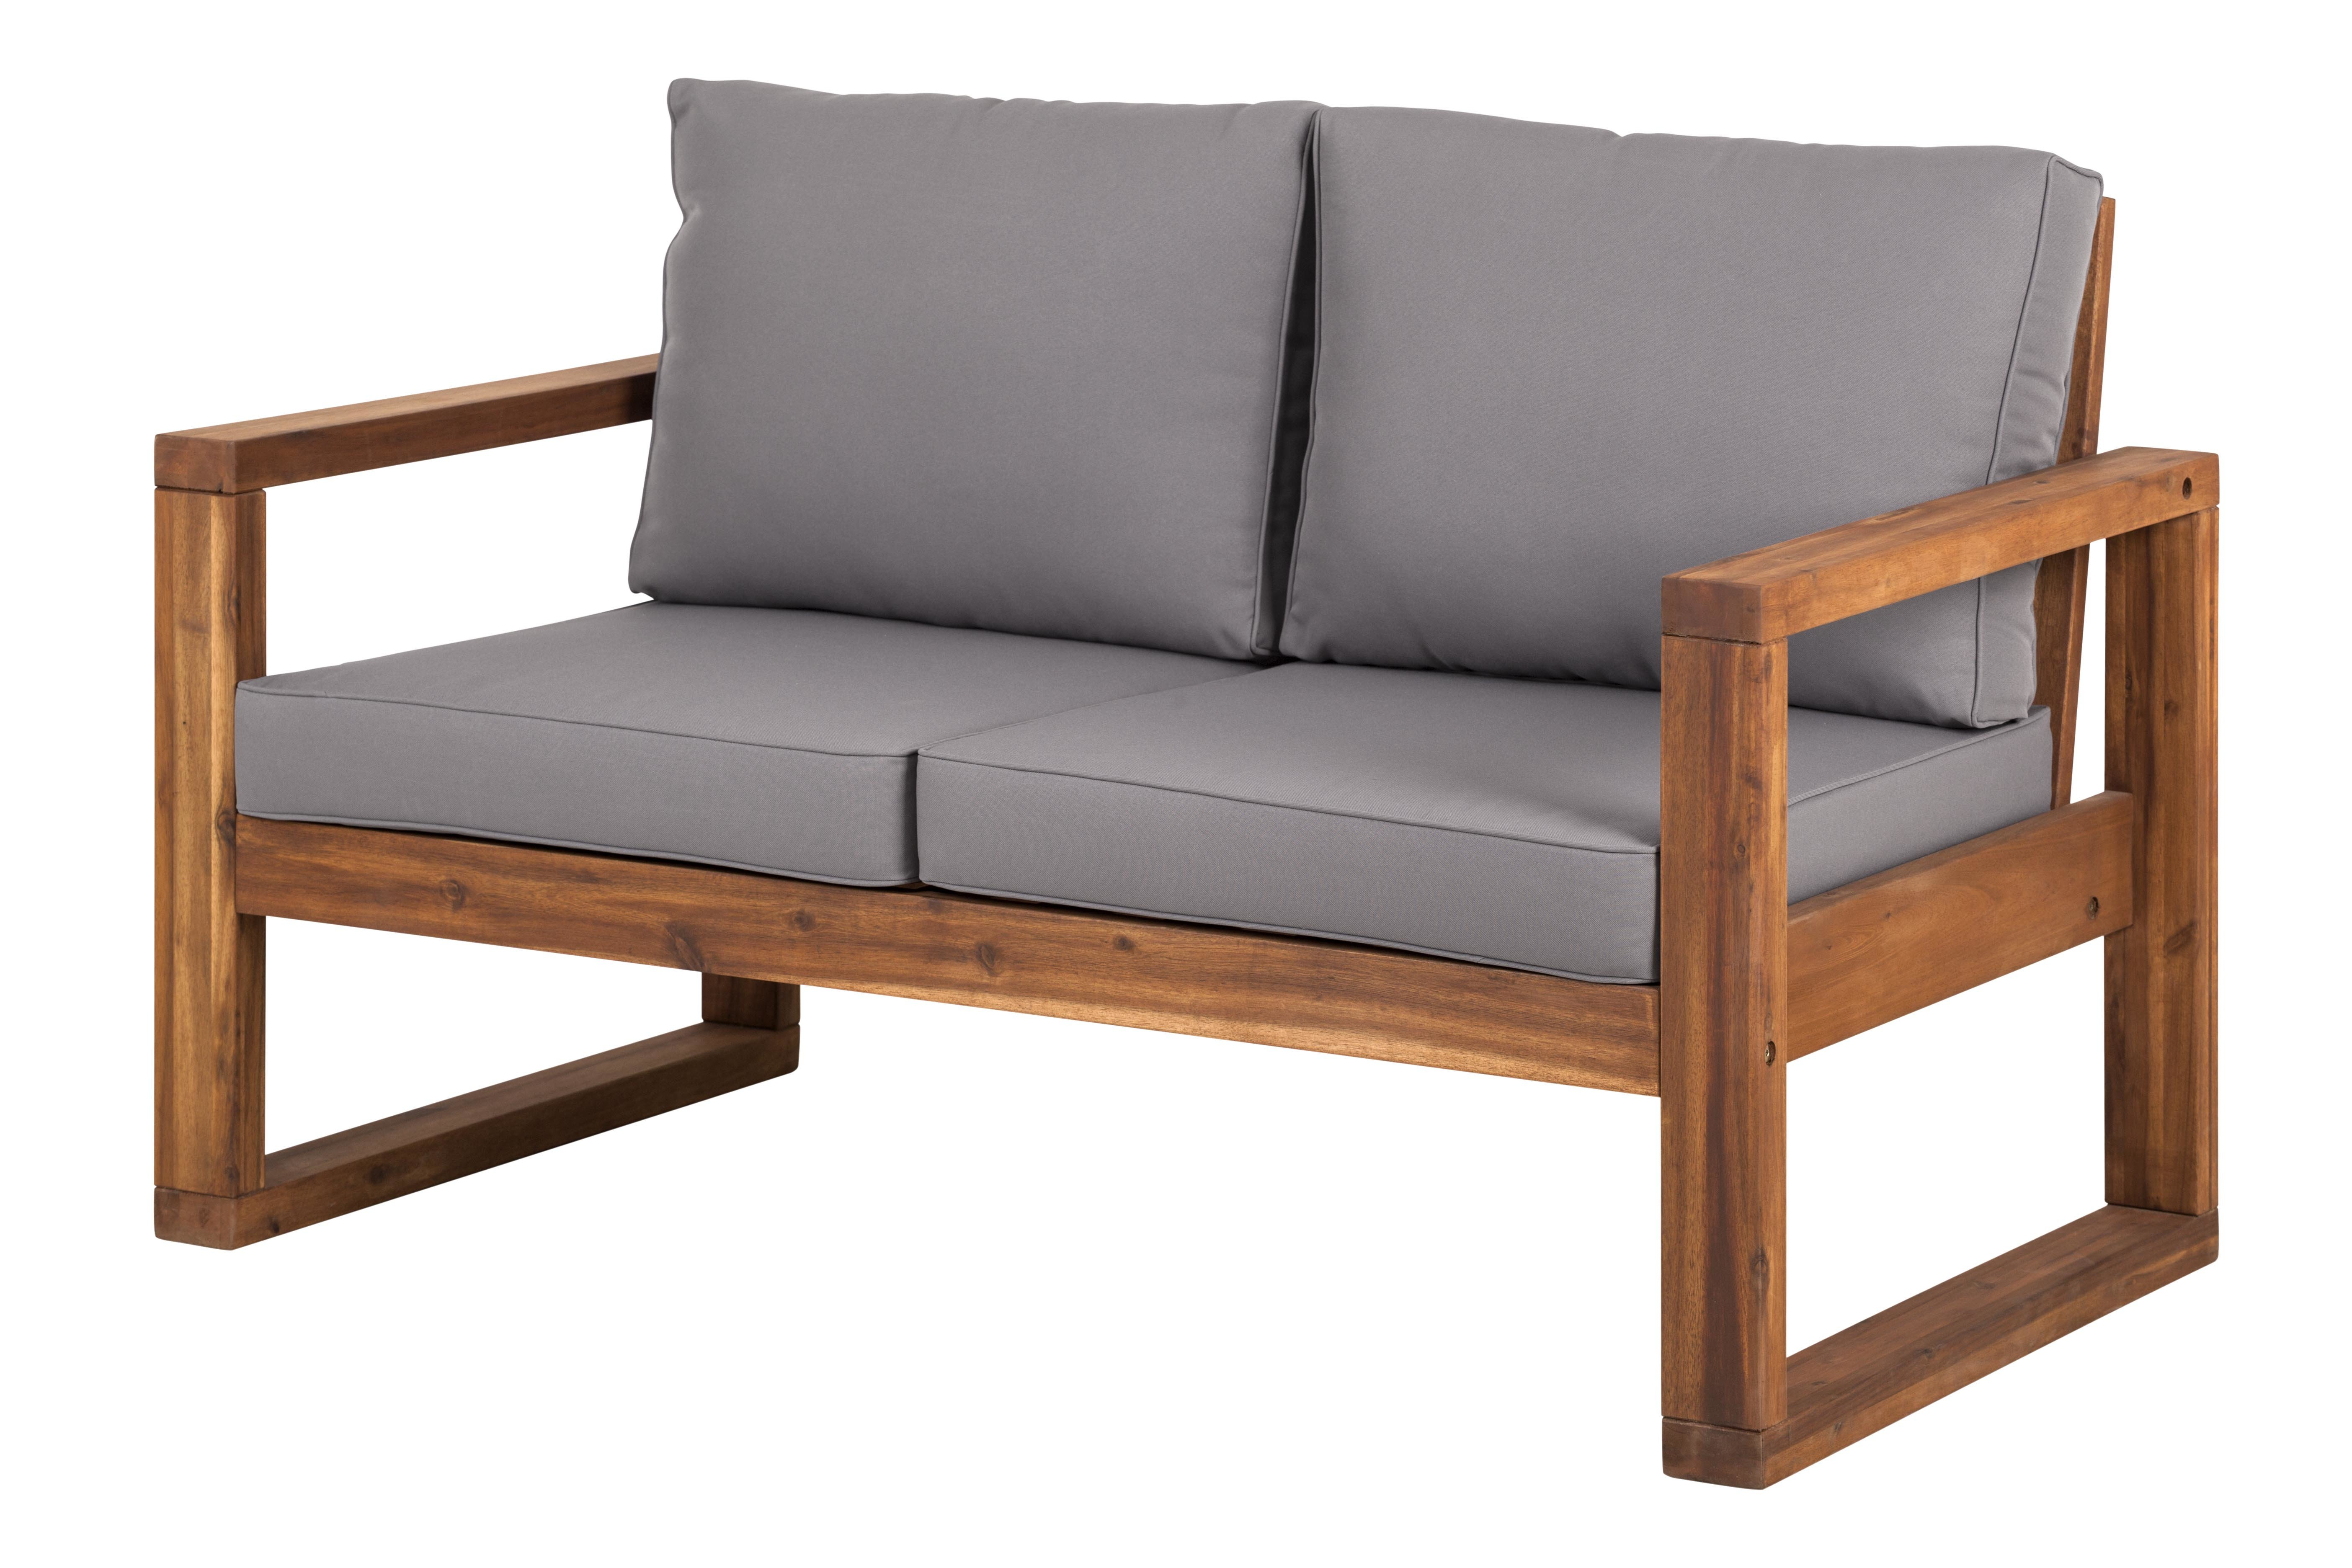 Freitag Loveseats With Cushions With Regard To Preferred Lyall Loveseat With Cushion (View 10 of 20)